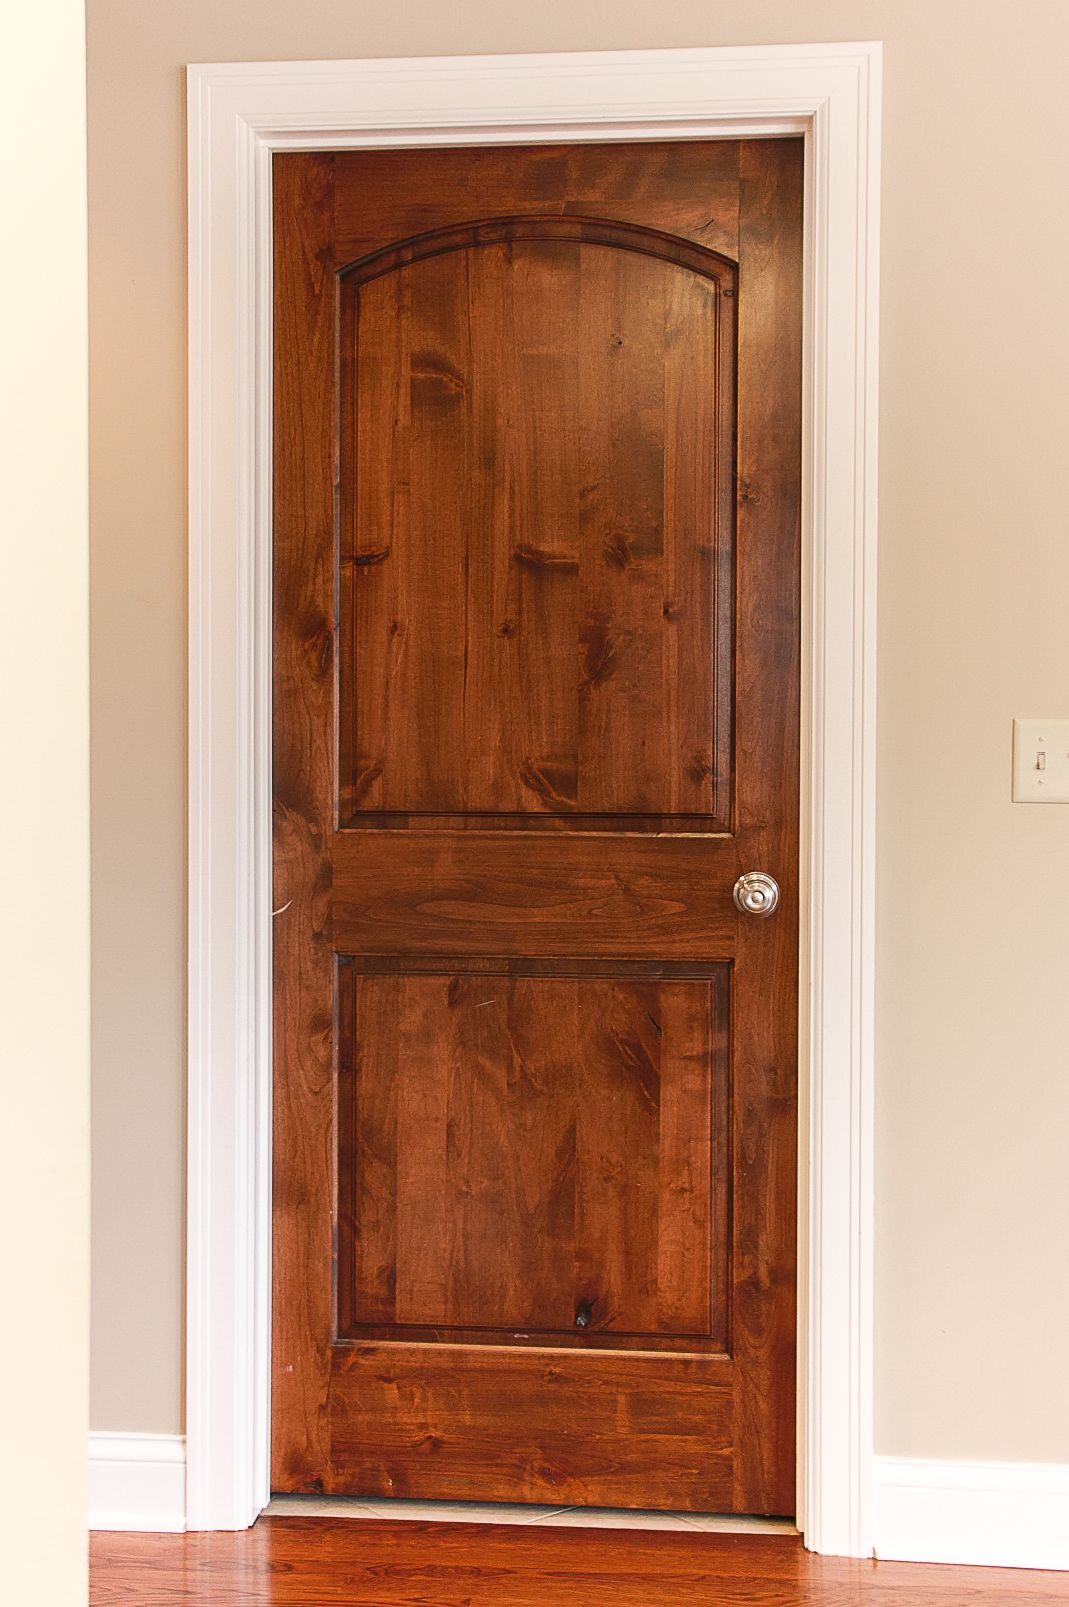 White trim and Wood doors  Custom stained Alder Doors